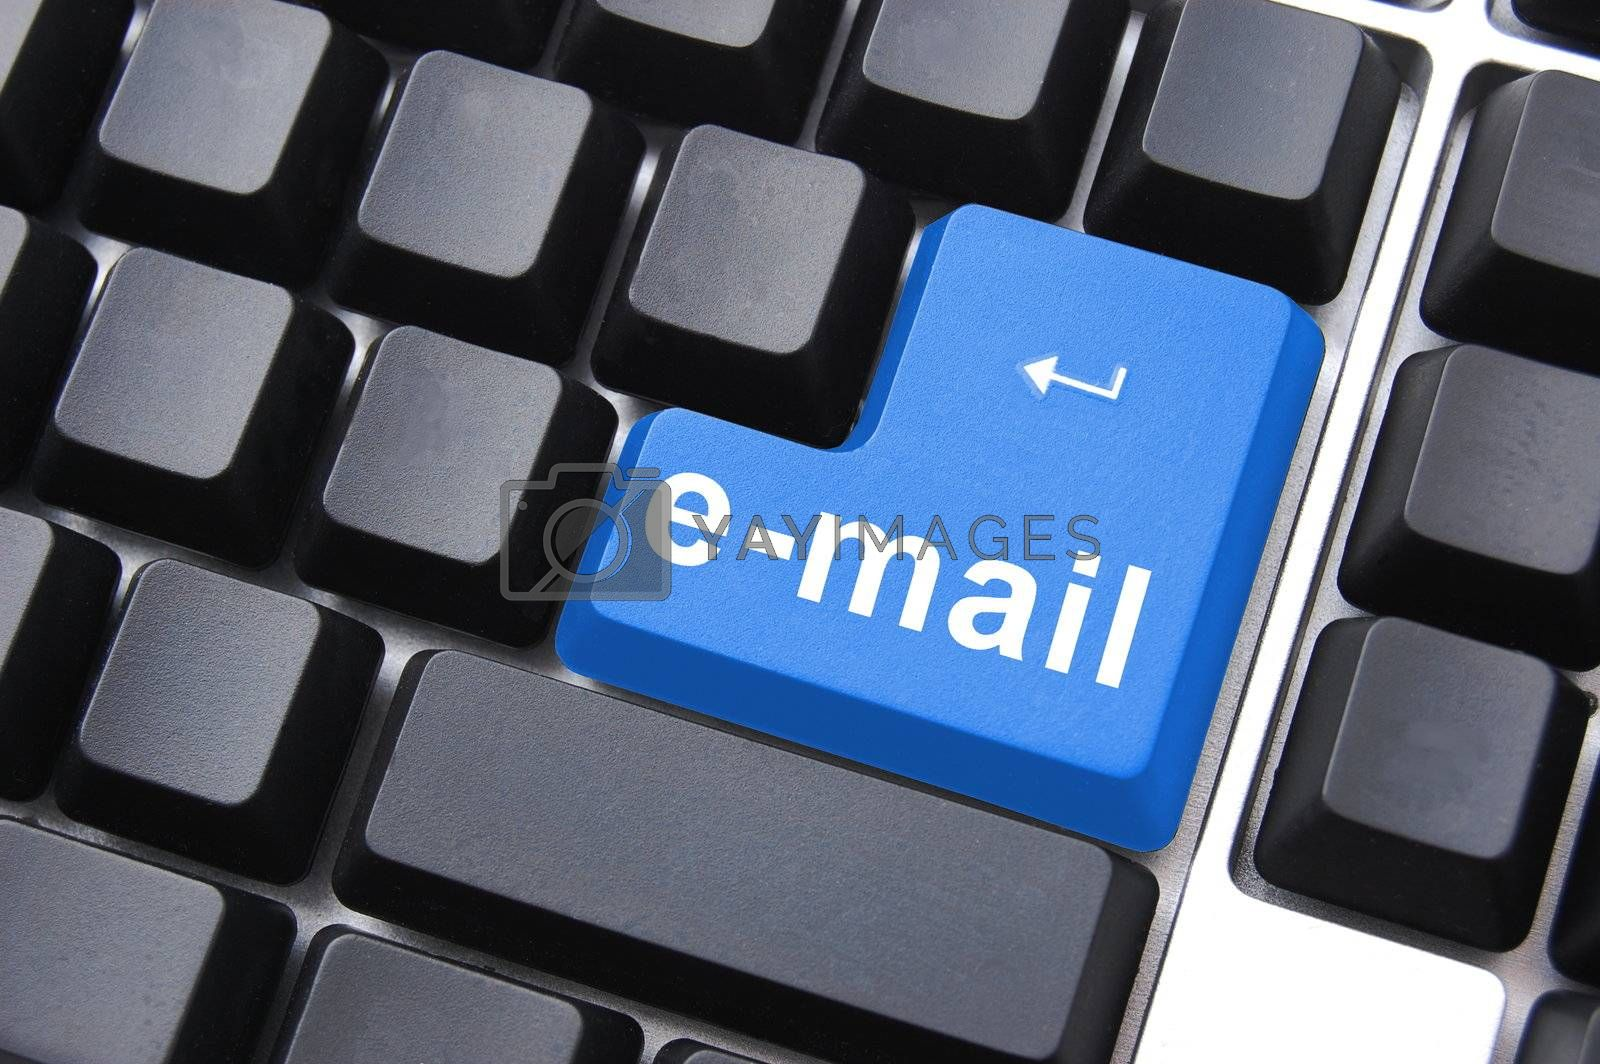 email button on computer keyboard showing concept for internet communication